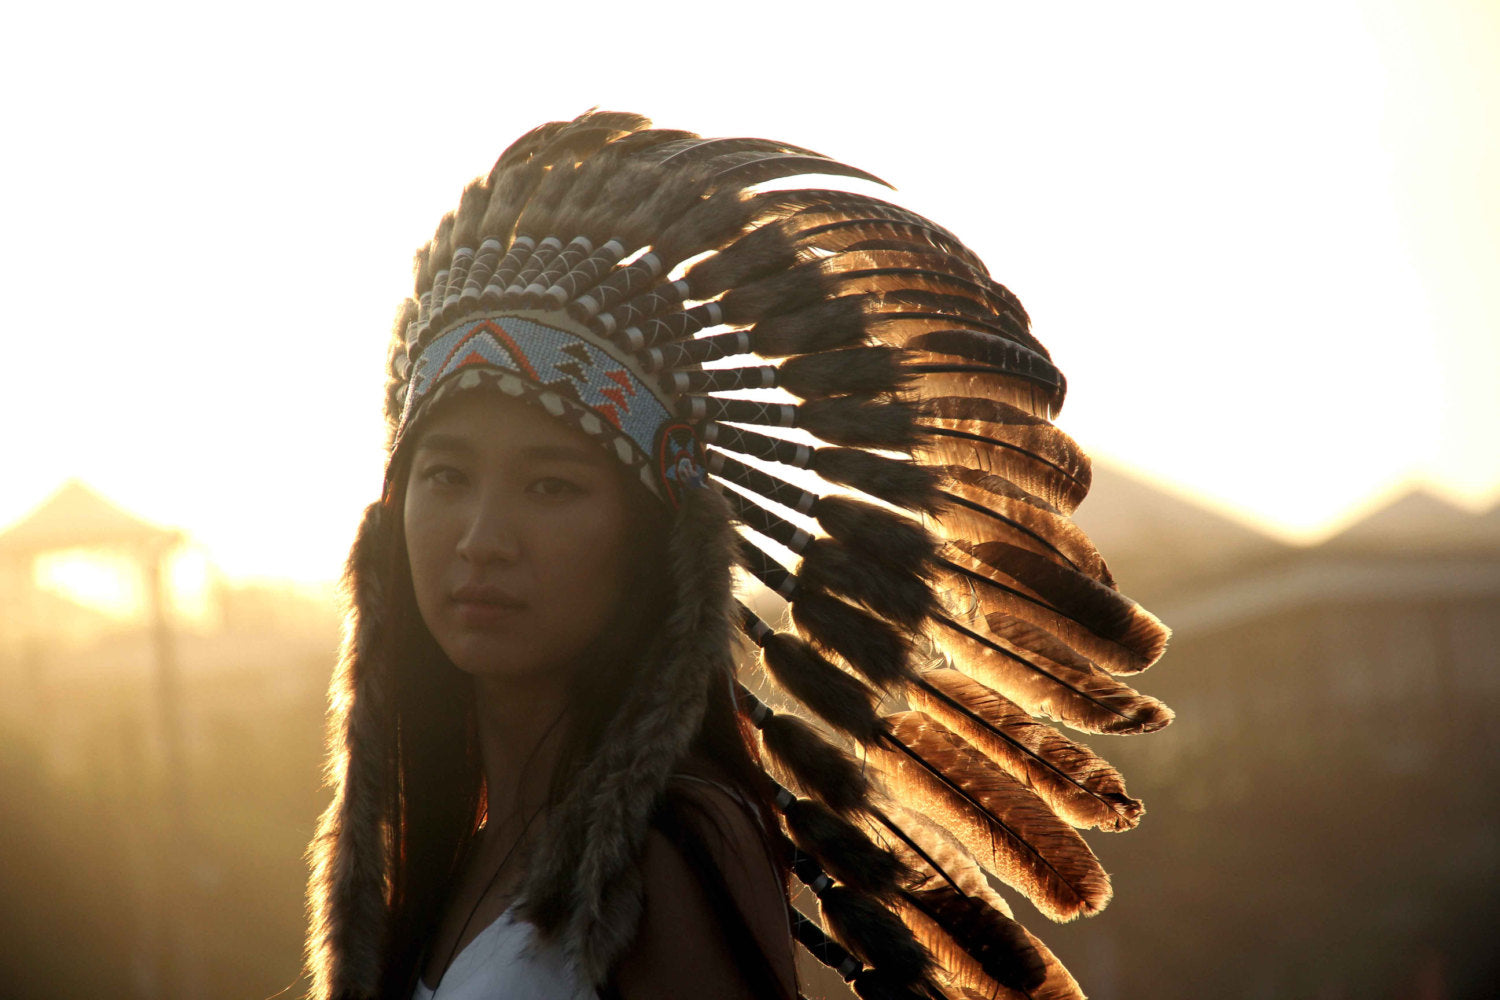 Long Brown Indian Headdress Replica made with natural turkey feathers and beaded band Hat Headdresses